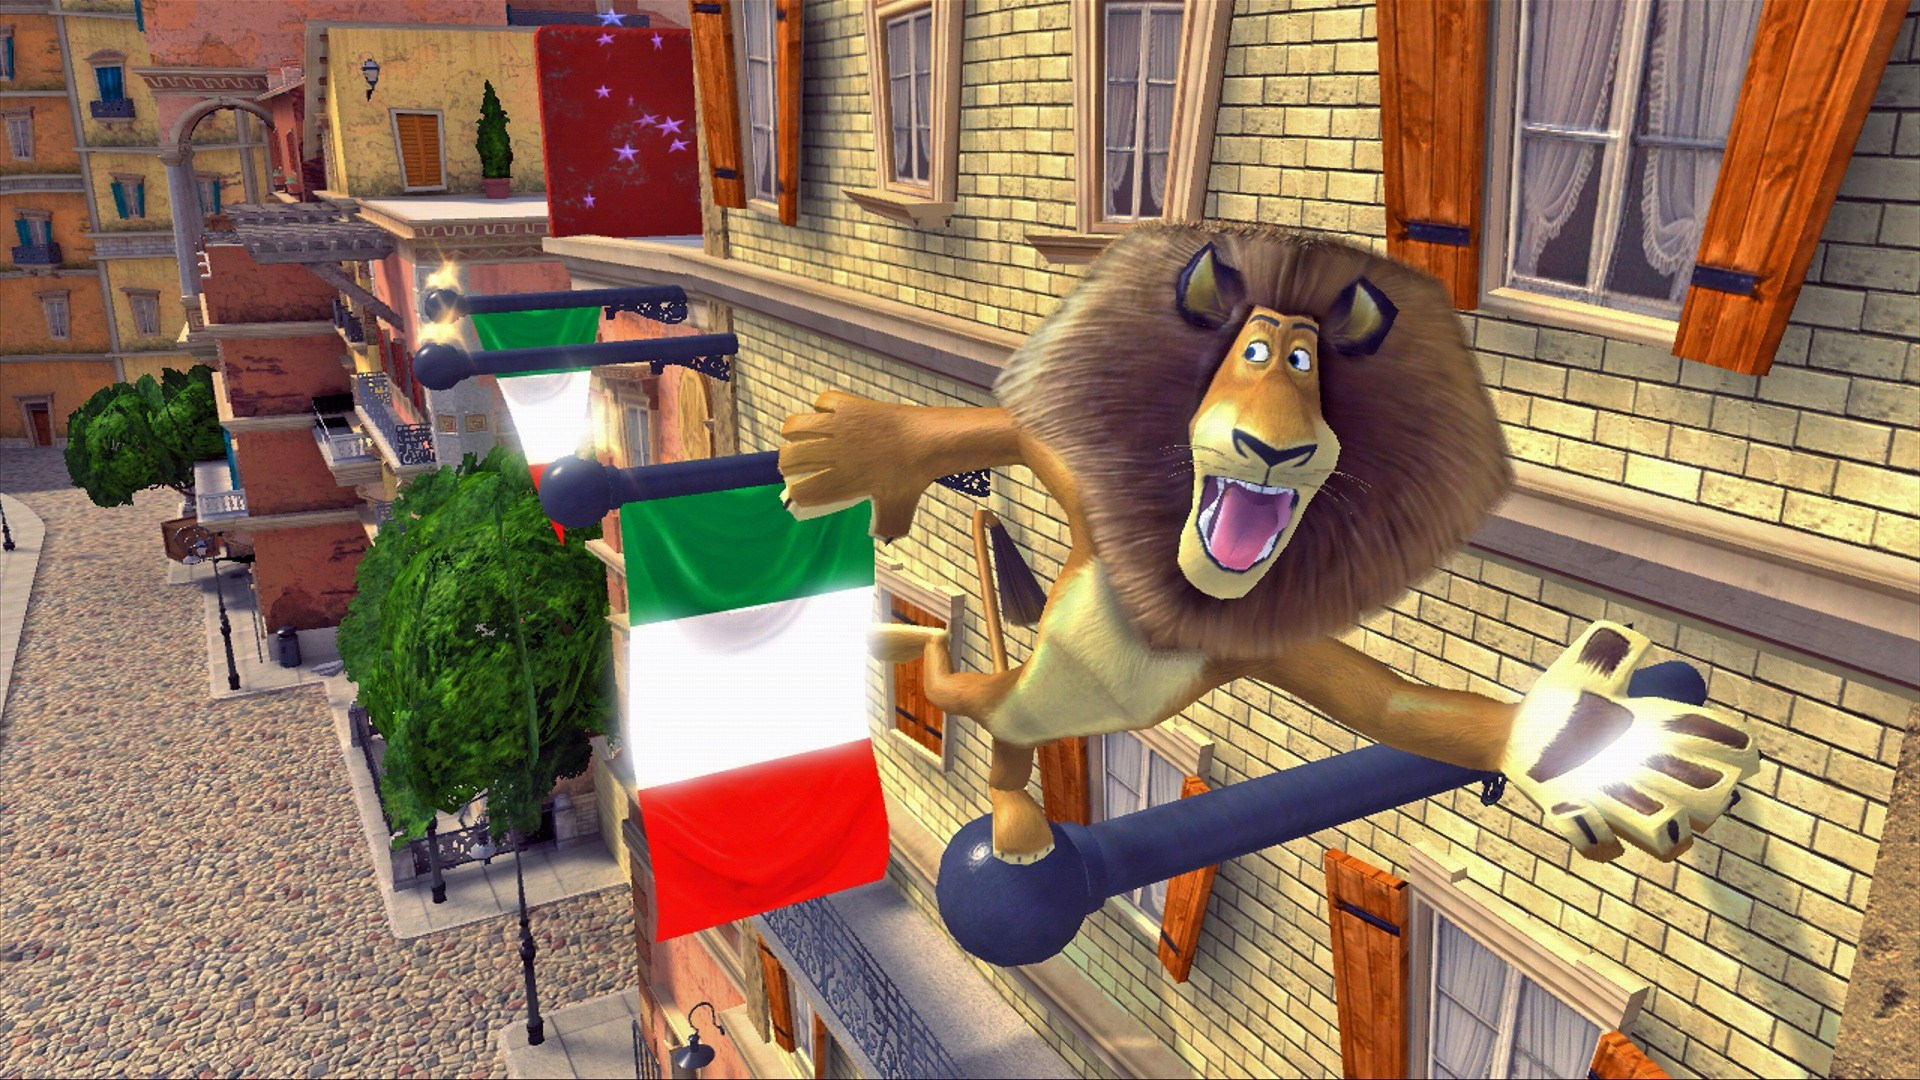 1920x1080-free-high-resolution-madagascar-the-video-game-wallpaper-wpc900728